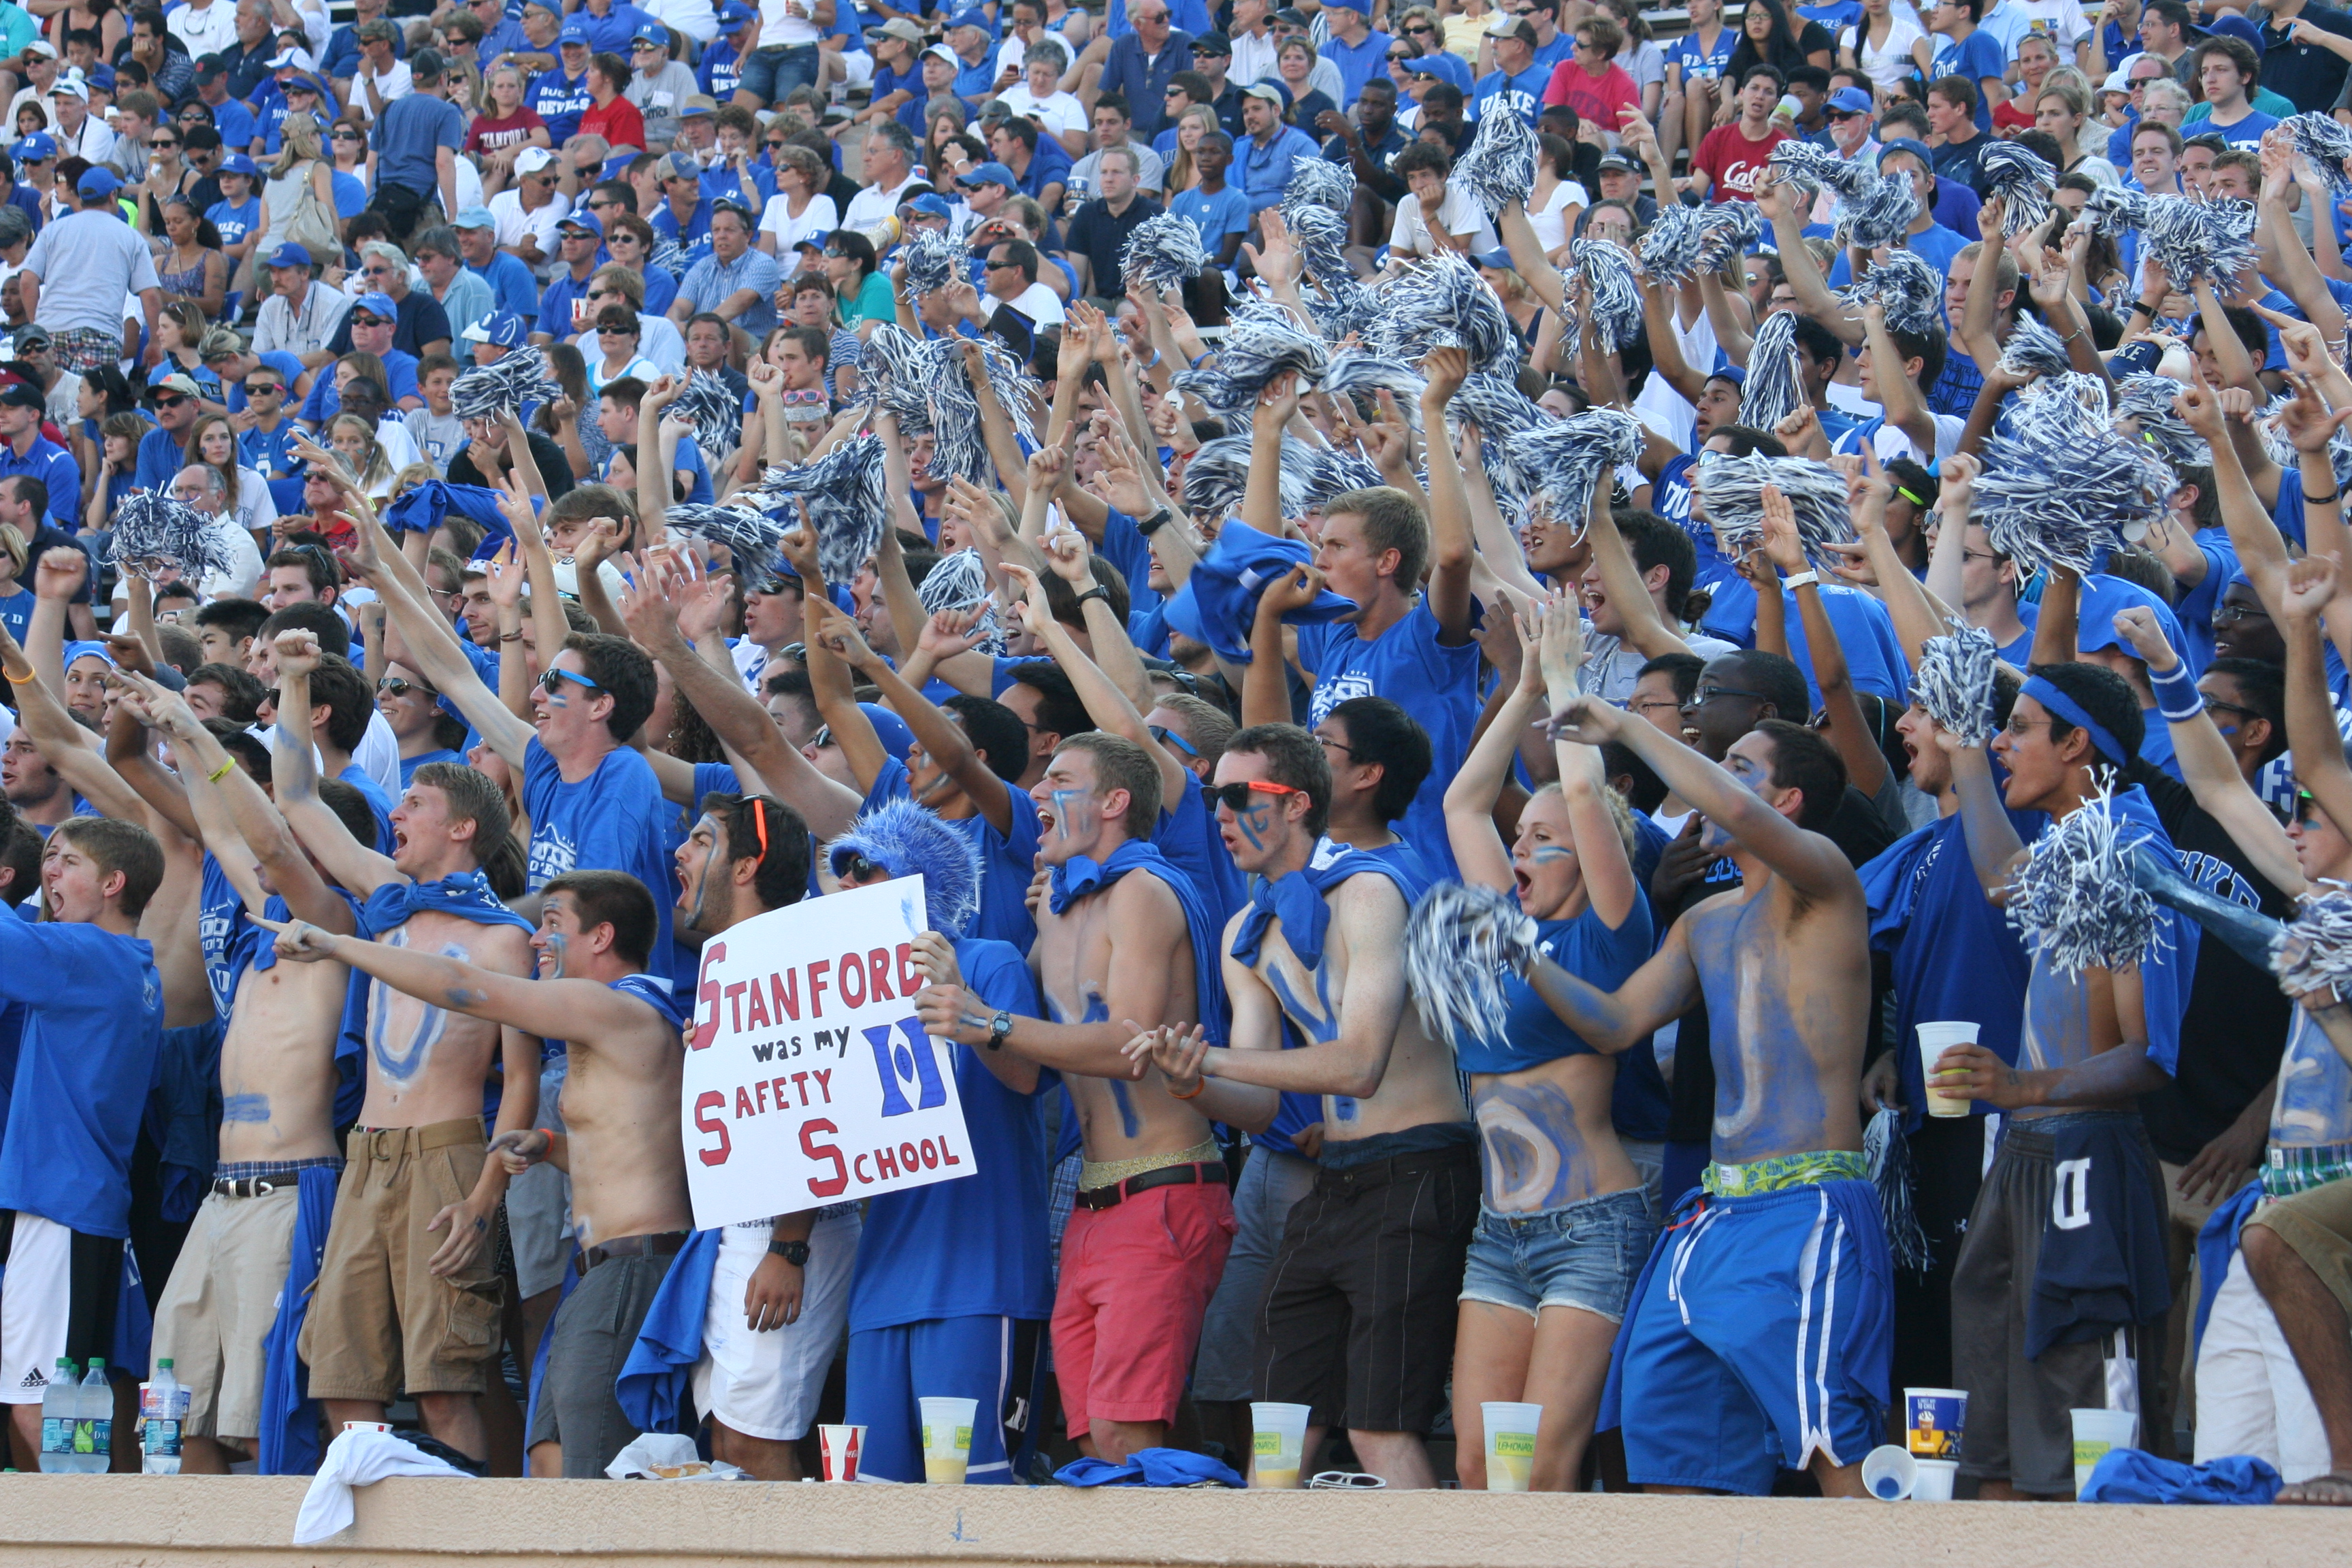 Duke football fans are anxious for something to cheer about - BDN Photo